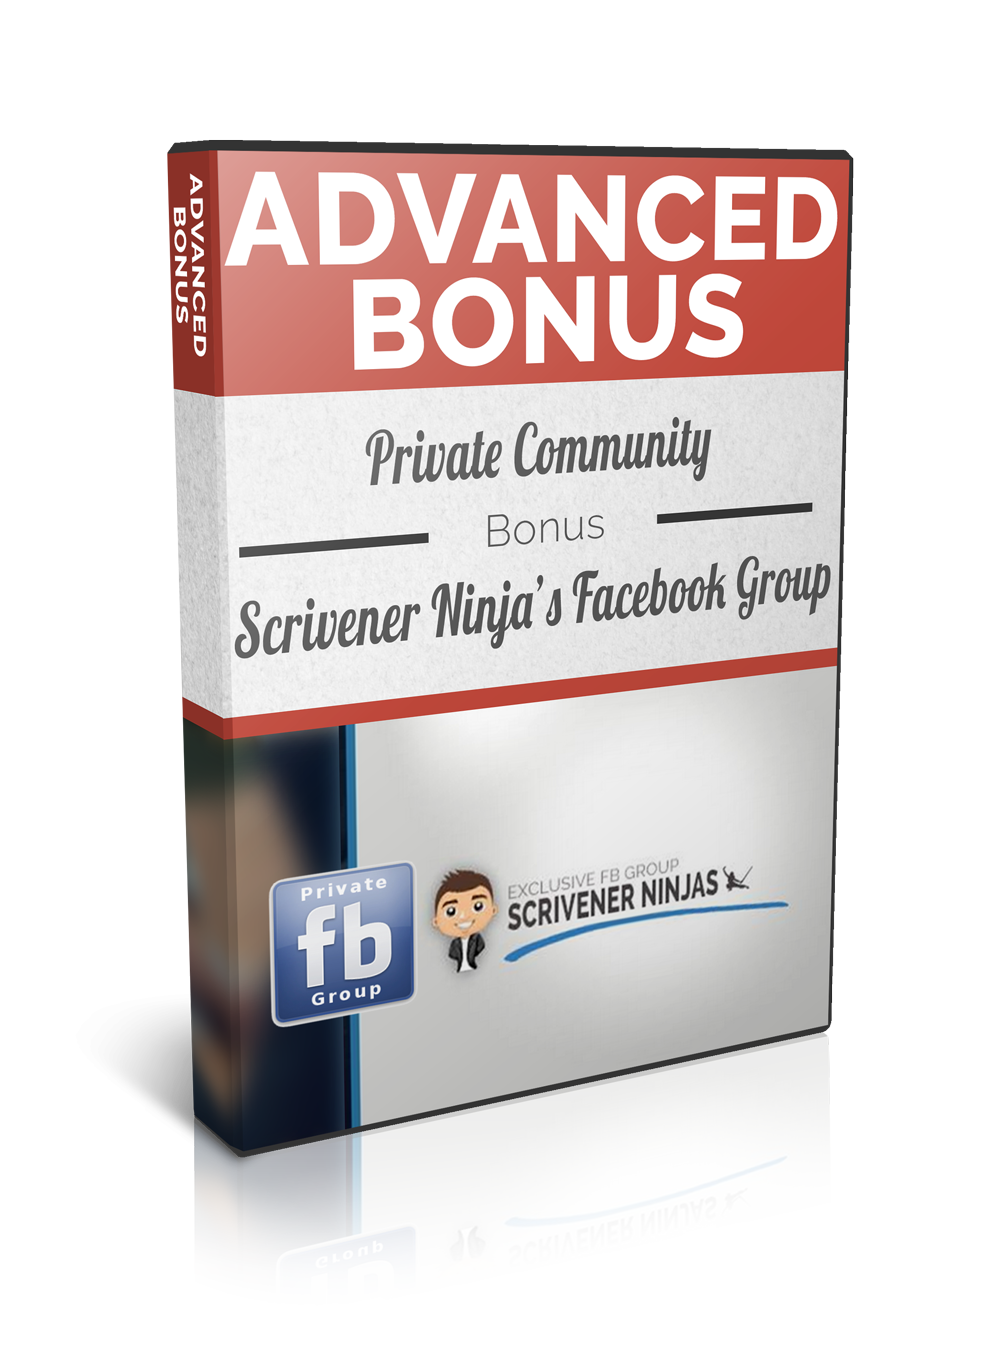 www.learn-scrivener-fast.com Scrivener Training & Coaching Course - Advanced Bonus 3 - Private Closed Group Scrivener Writing Group